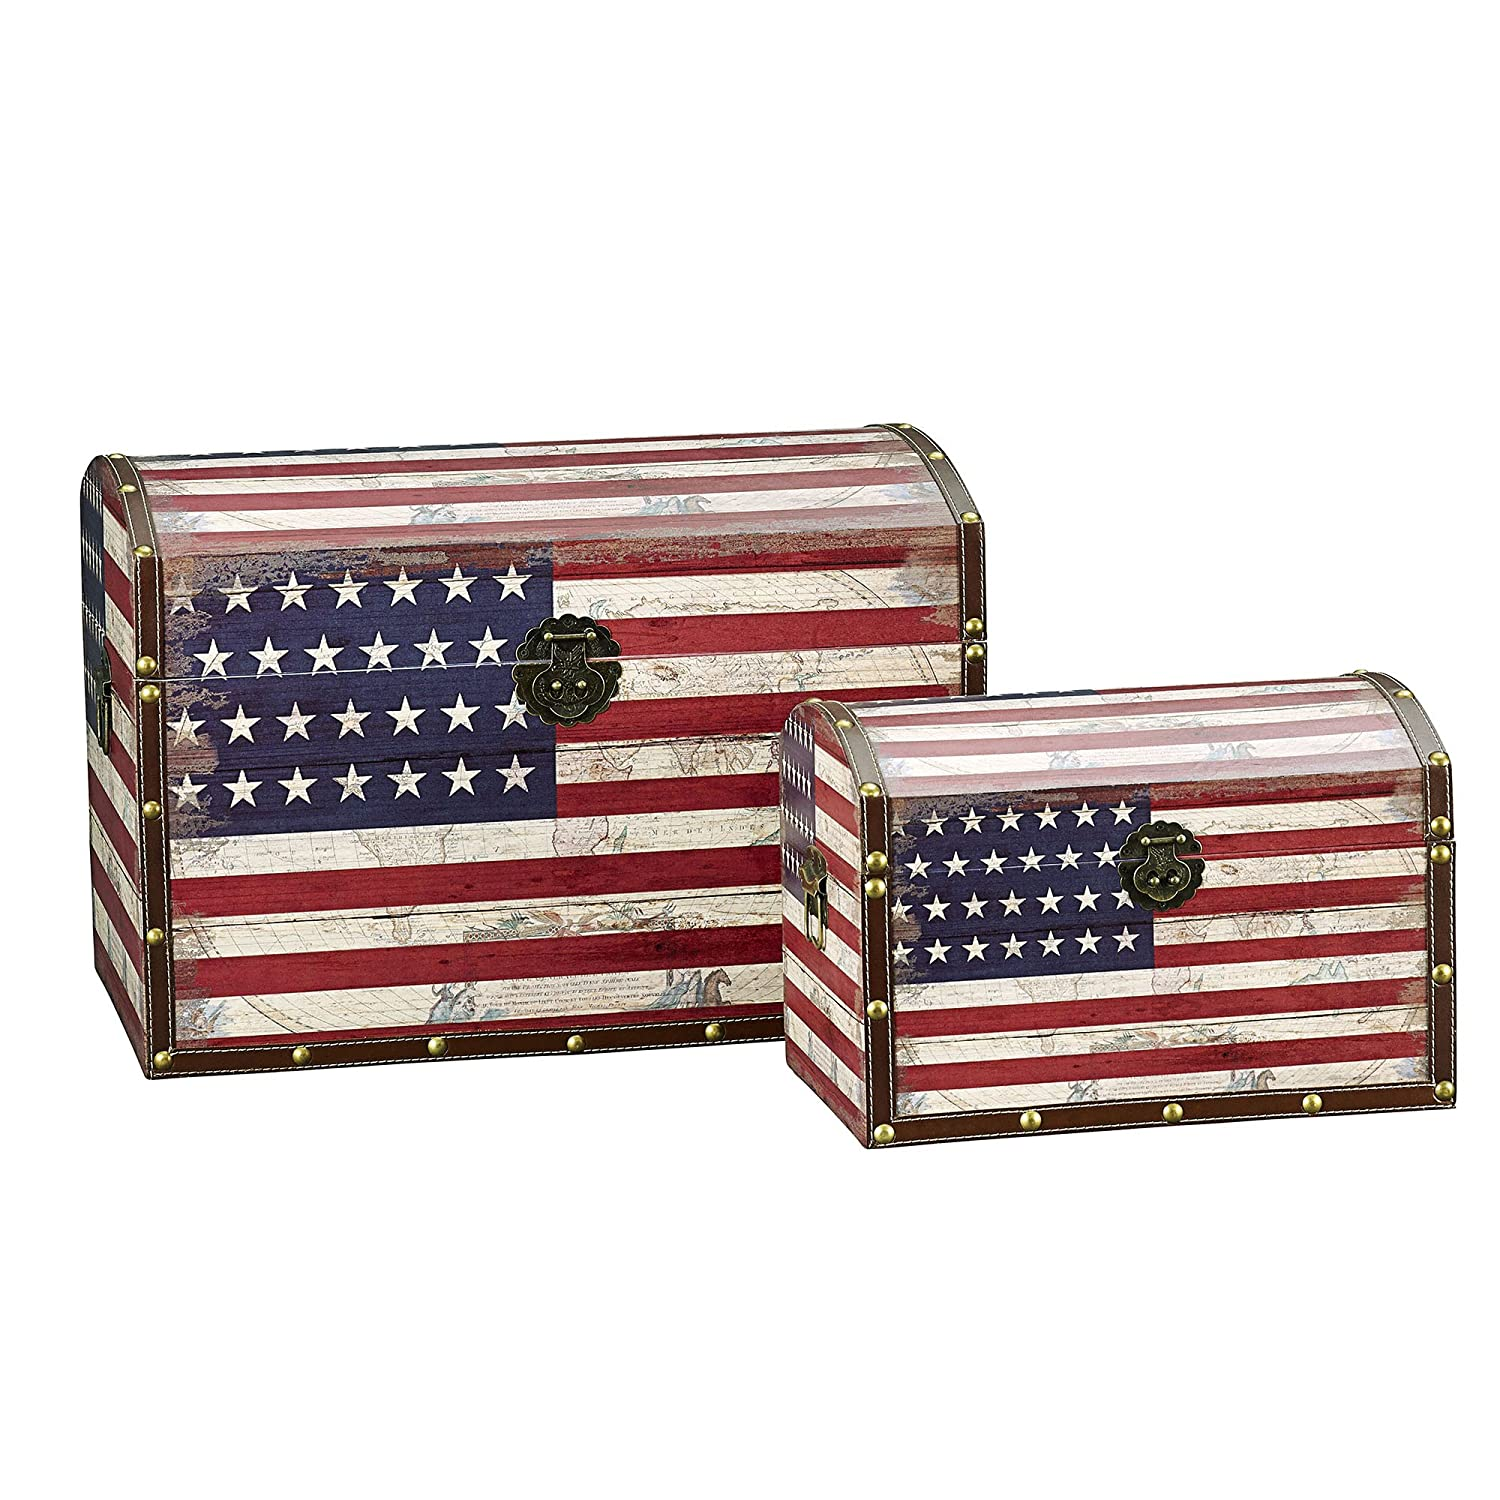 Amazon.com: Household Essentials Decorative Storage Trunk, American Flag  Design, Jumbo and Medium, Set of 2: Kitchen & Dining